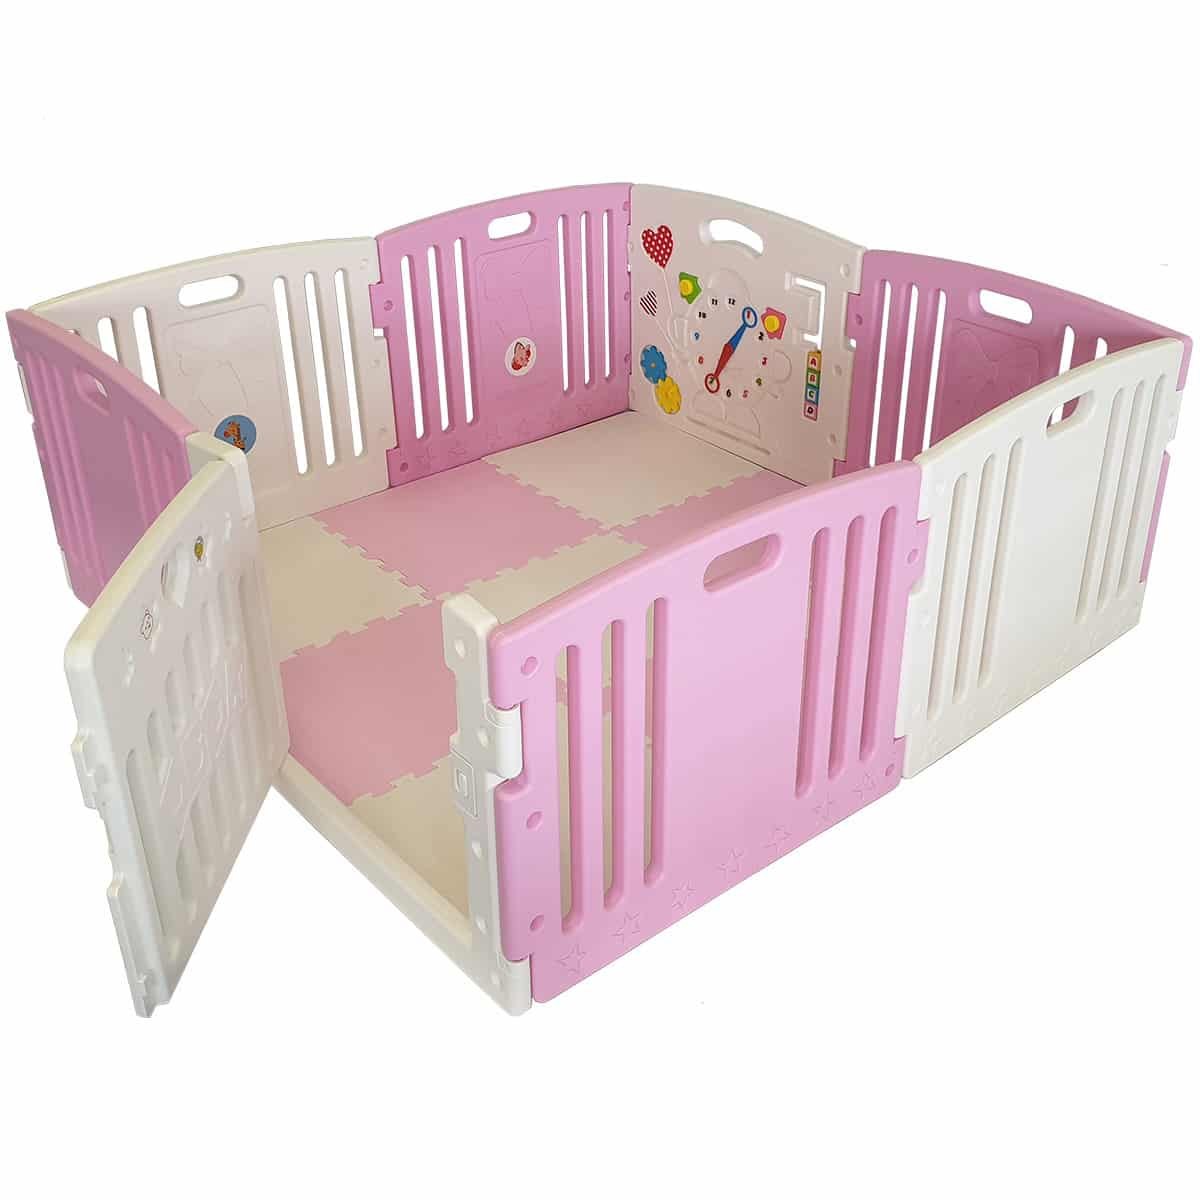 Baby Playpen Height Venture All Stars Duo Baby Playpen Pink